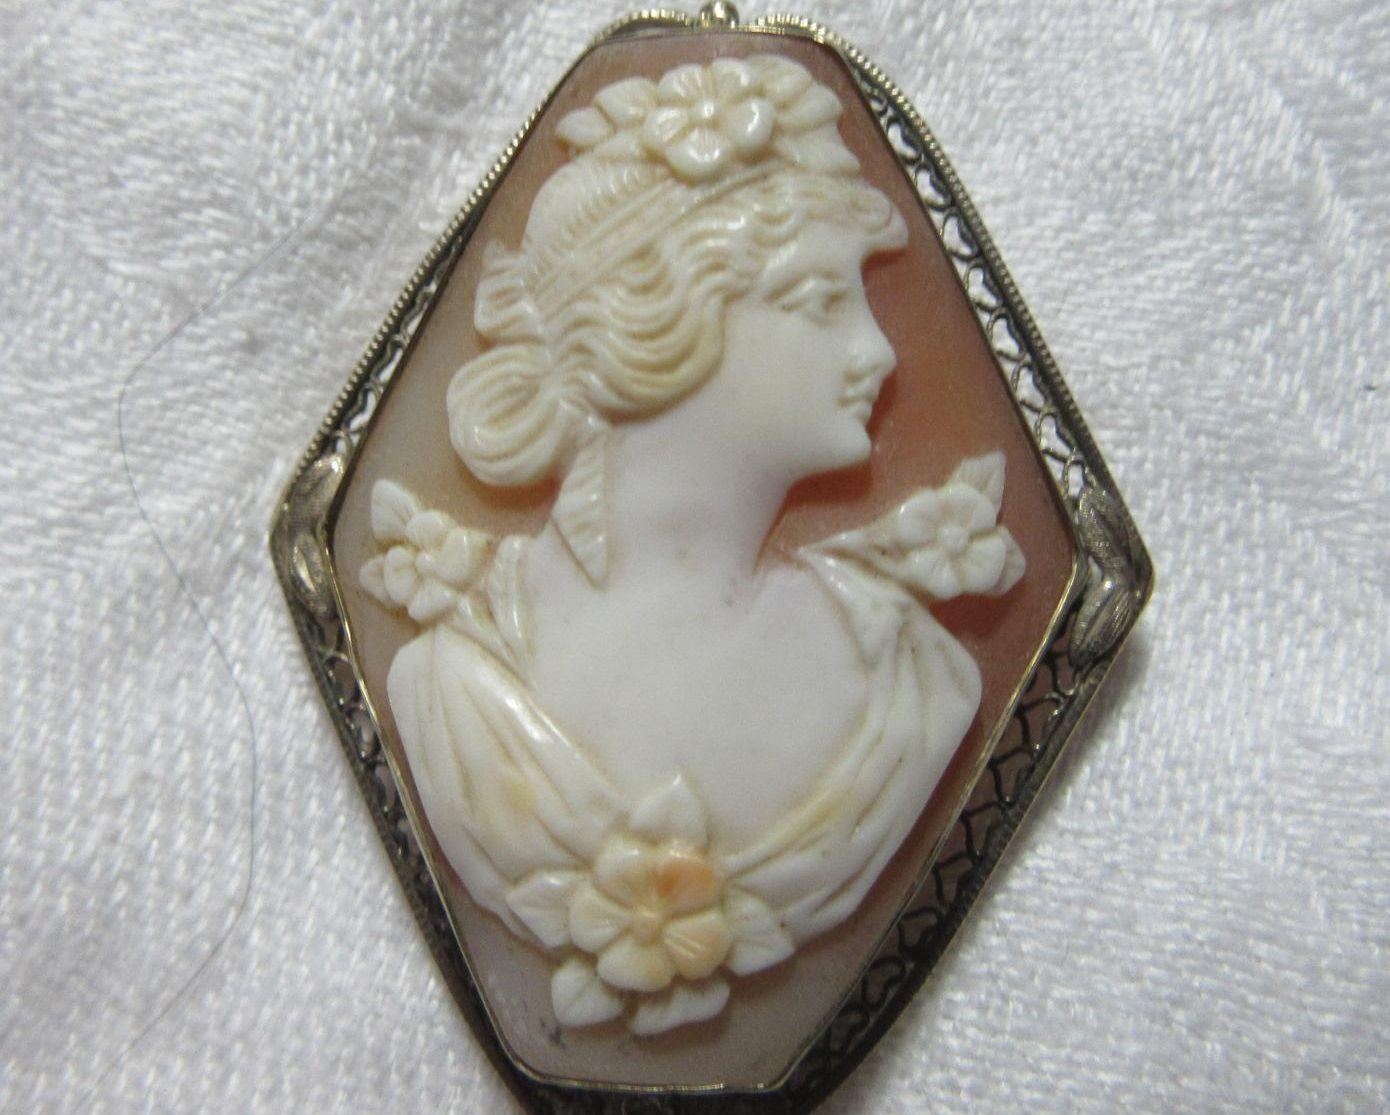 14K White Gold Carved Shell Cameo Brooch  Pendant